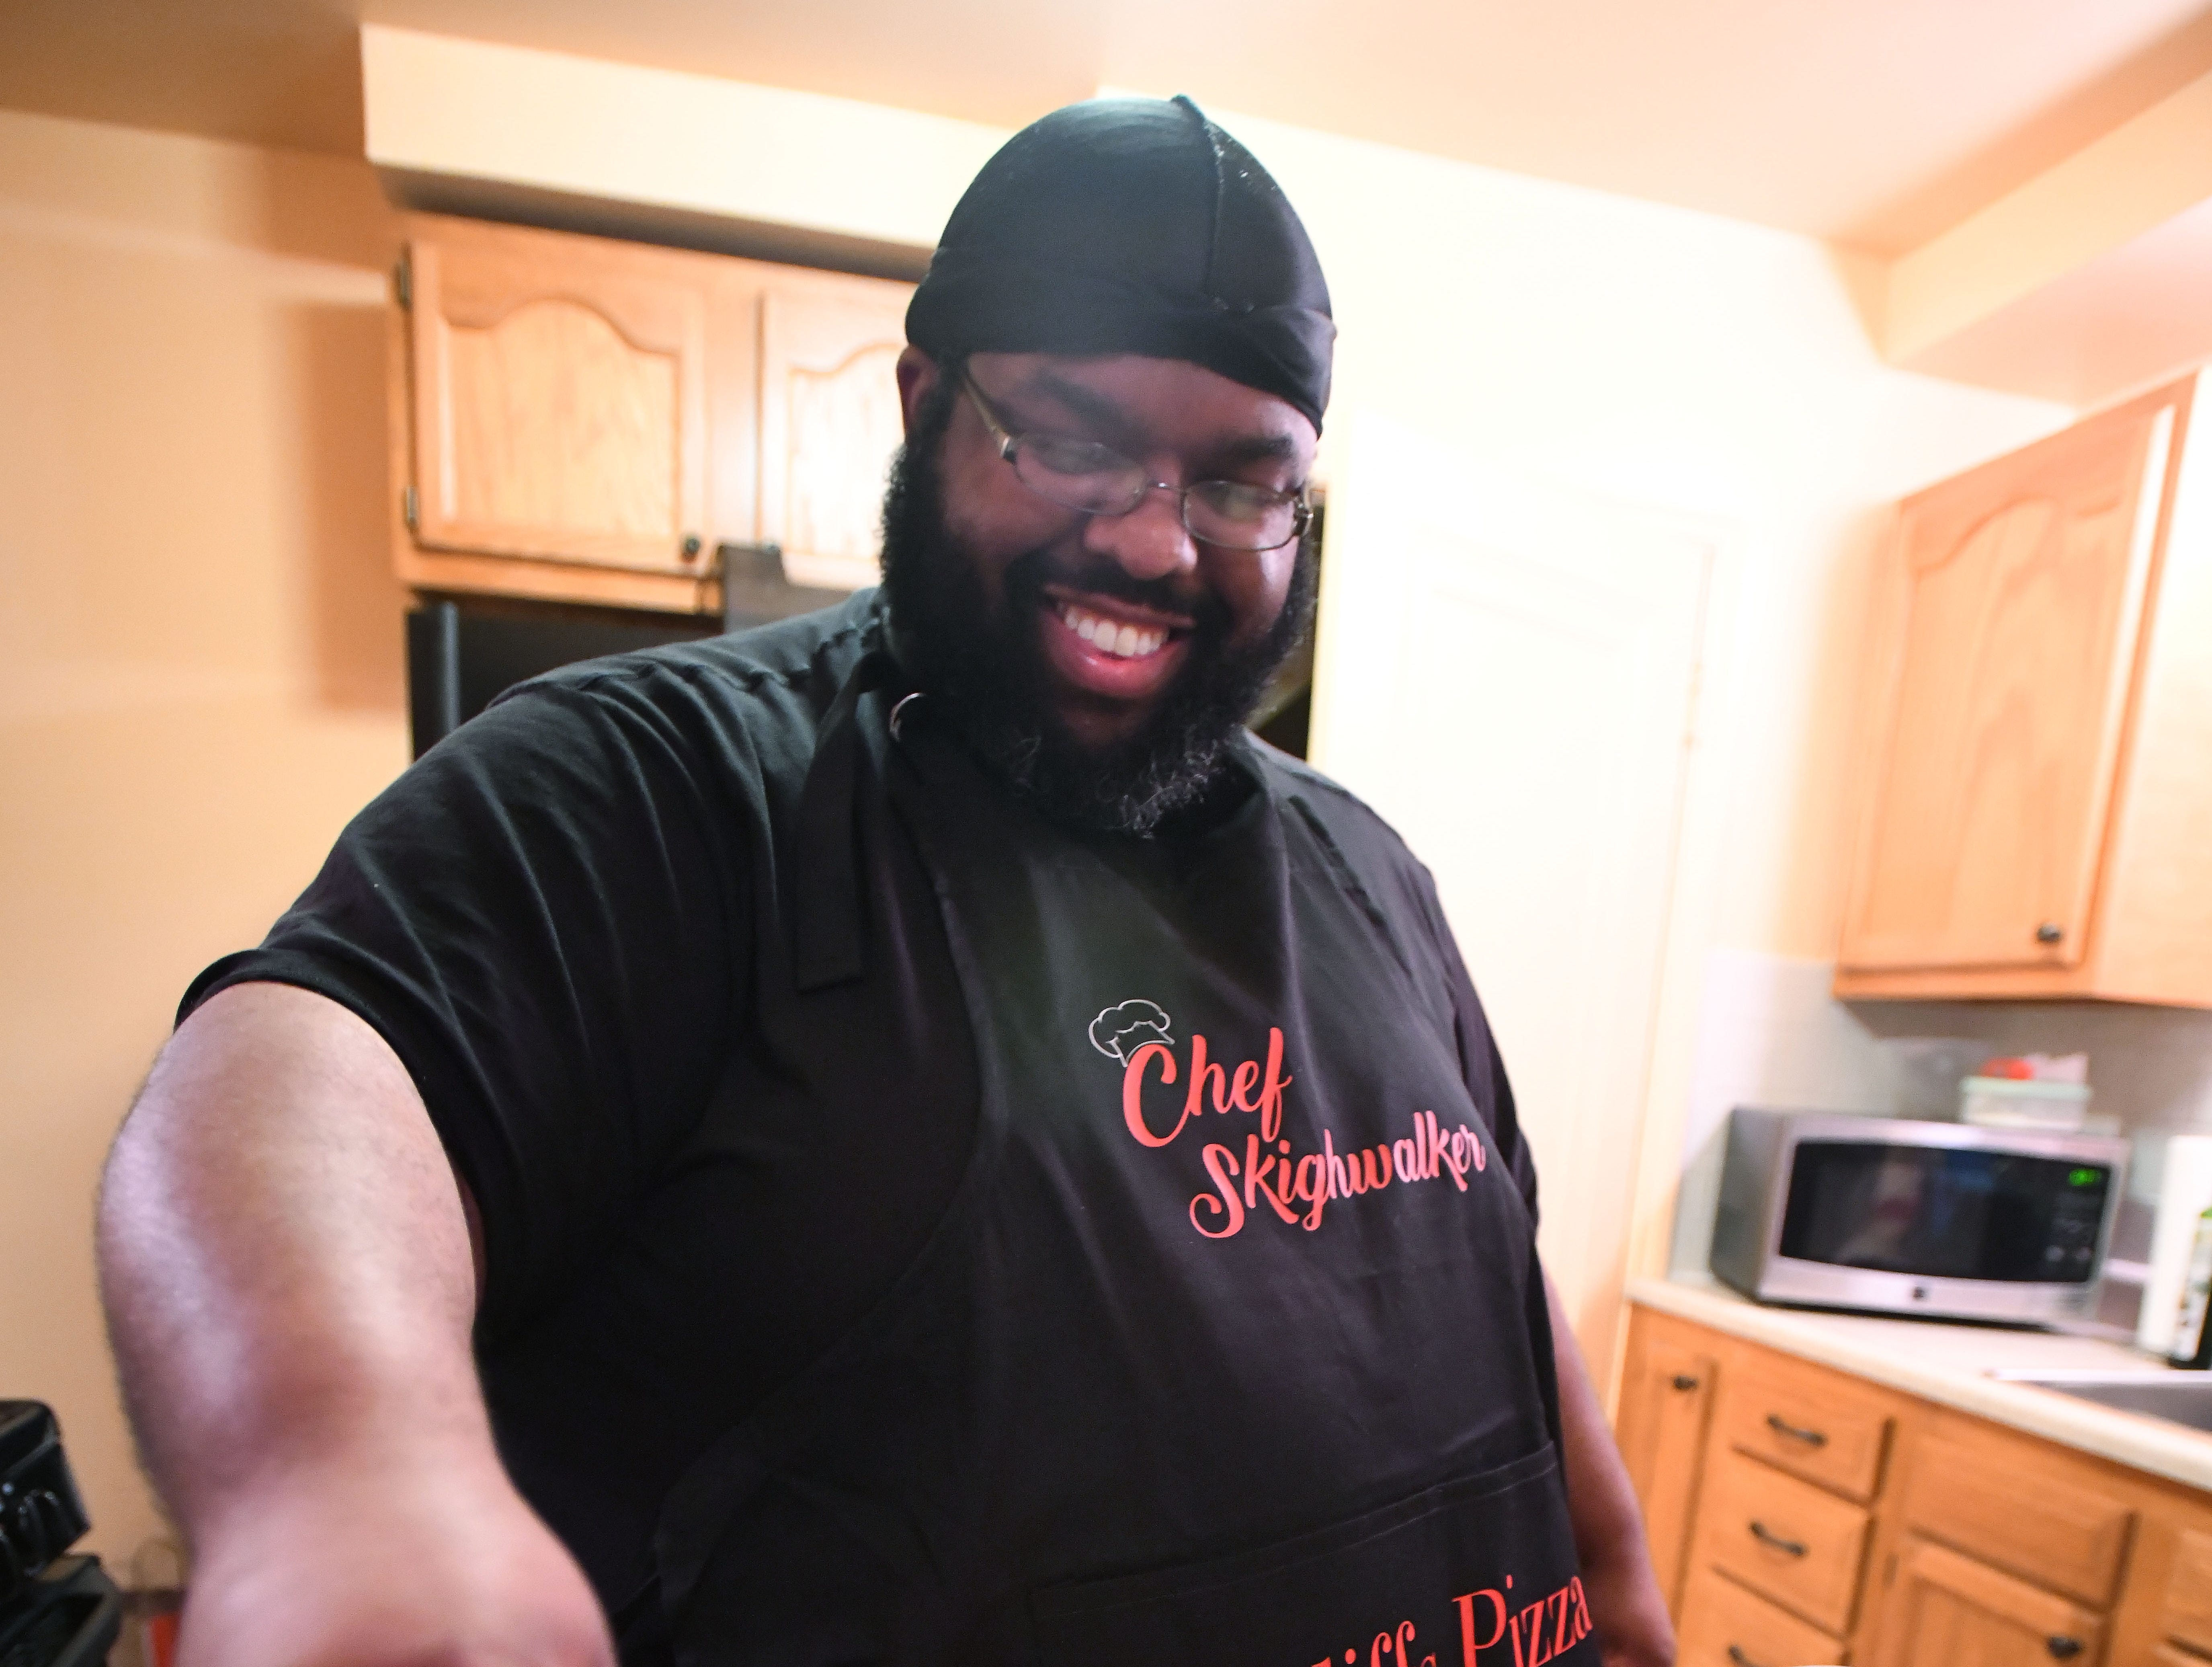 'Instachef' Cliff Skighwalker works on a couple pizzas in the kitchen of his home in Pontiac.